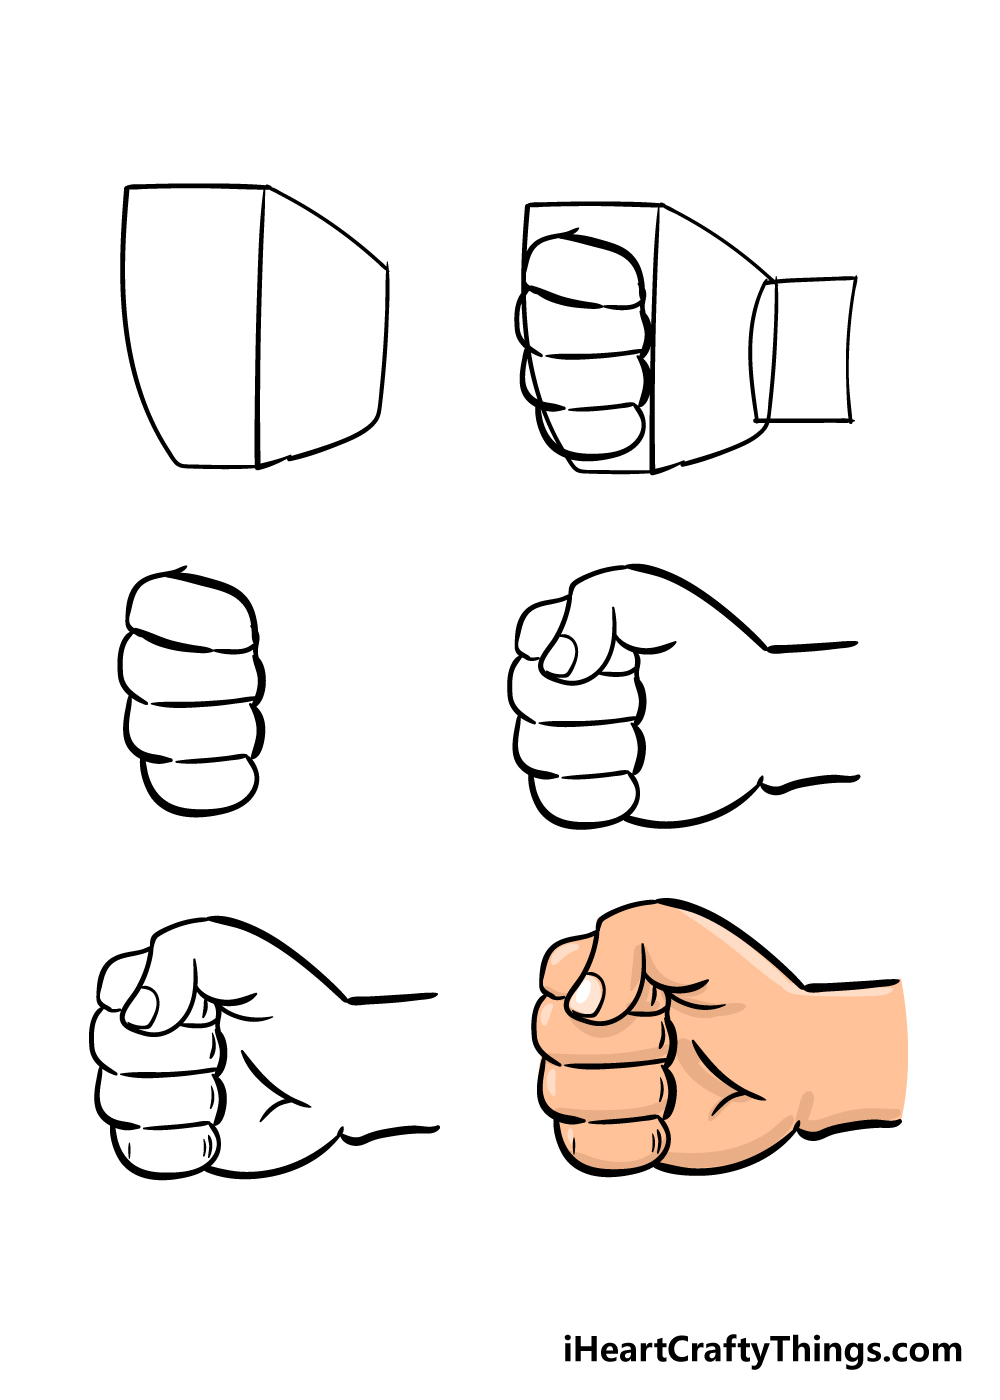 how to draw a fist in 6 steps